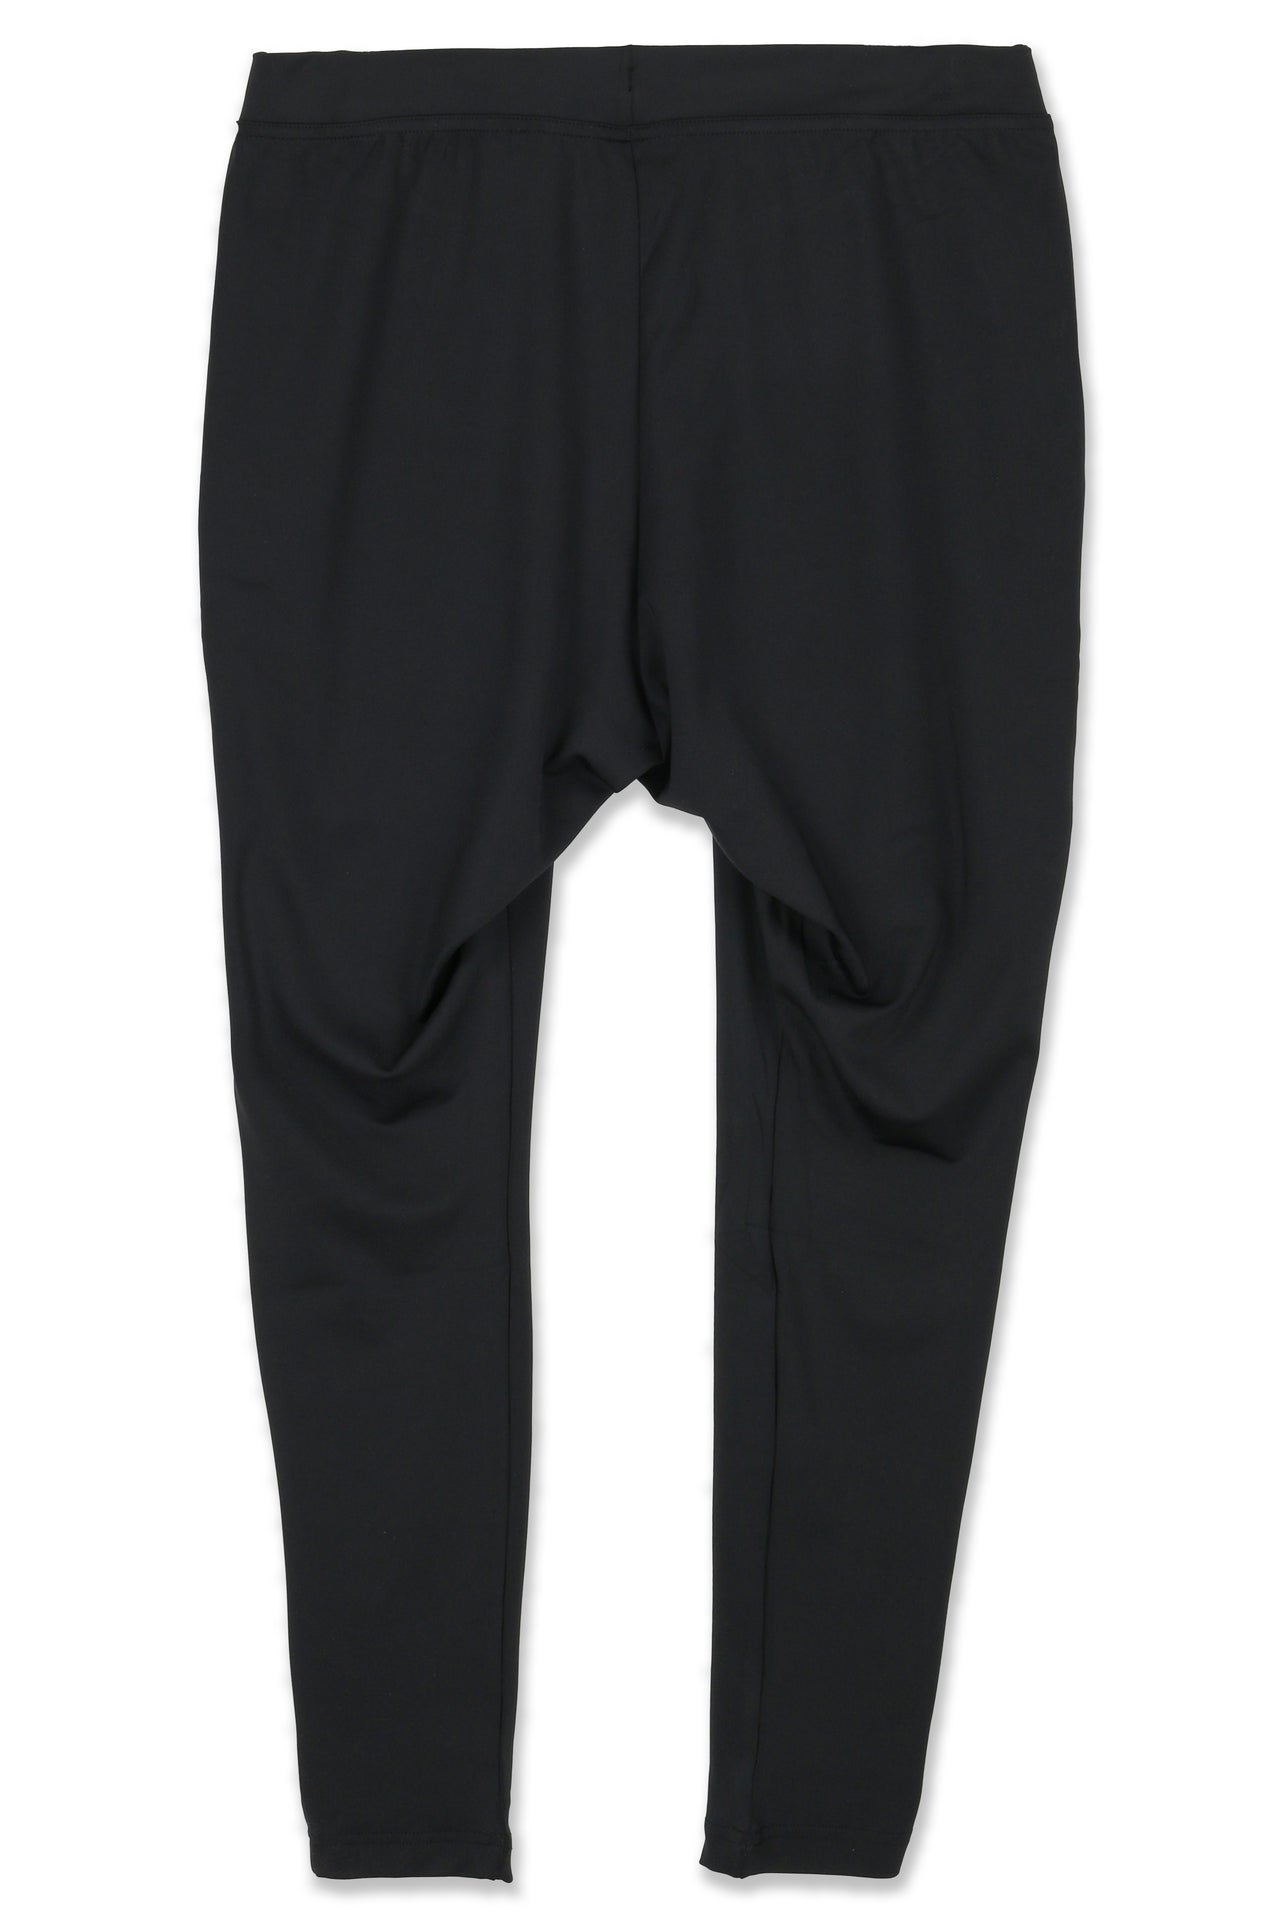 Asics Adaptable Fitted Knit Pant